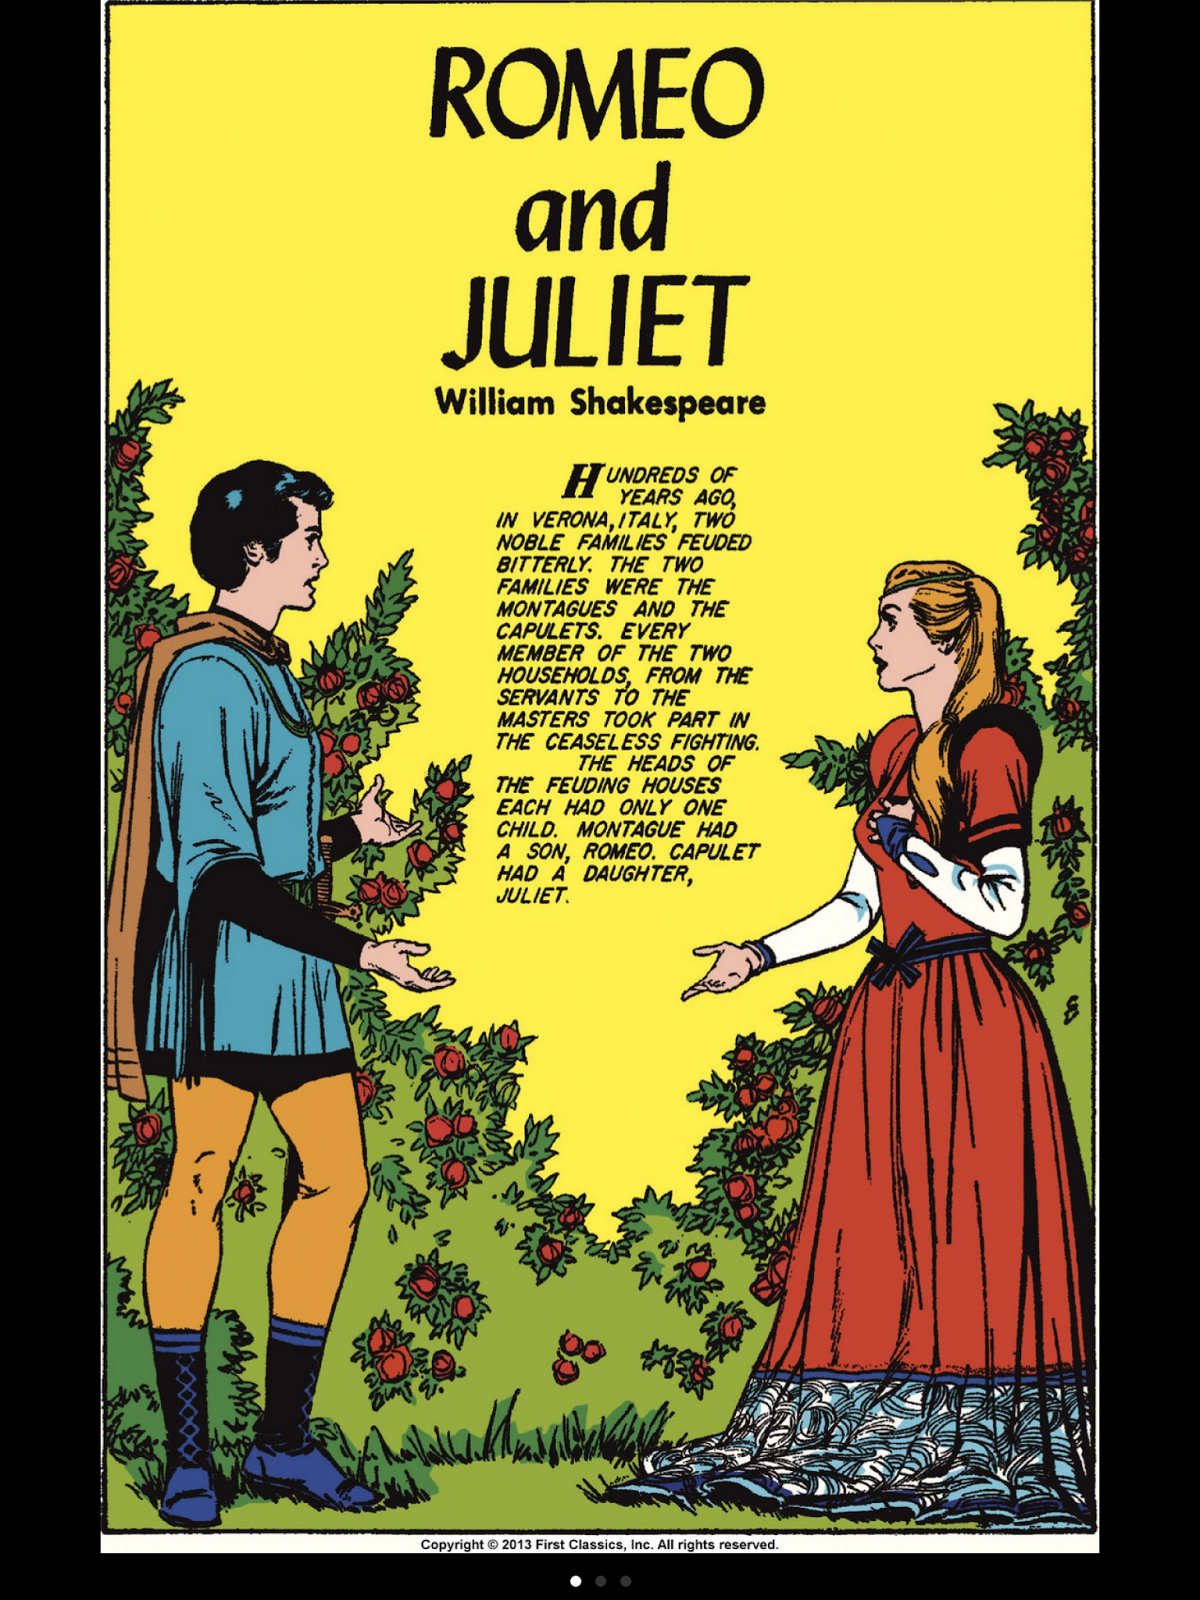 romeo and juliet term papers Romeo and juliet - what is love essays: over 180,000 romeo and juliet - what is love essays, romeo and juliet - what is love term papers, romeo and juliet - what is love.